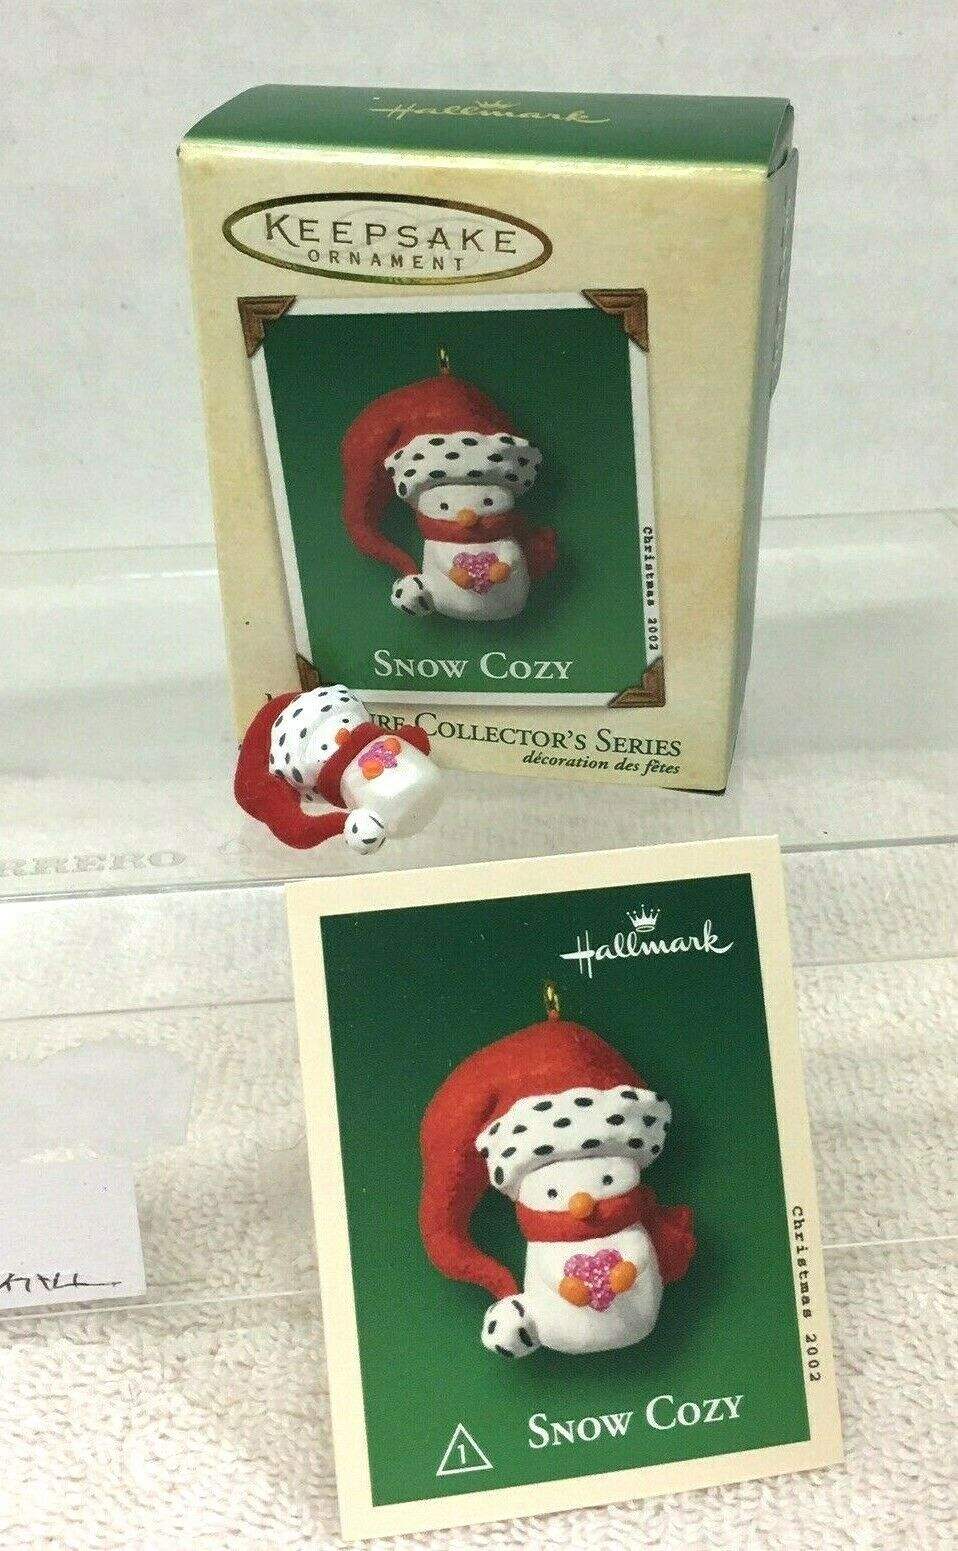 Primary image for 2002 Snow Cozy #1 Mini Hallmark Christmas Tree Ornament MIB Price Tag